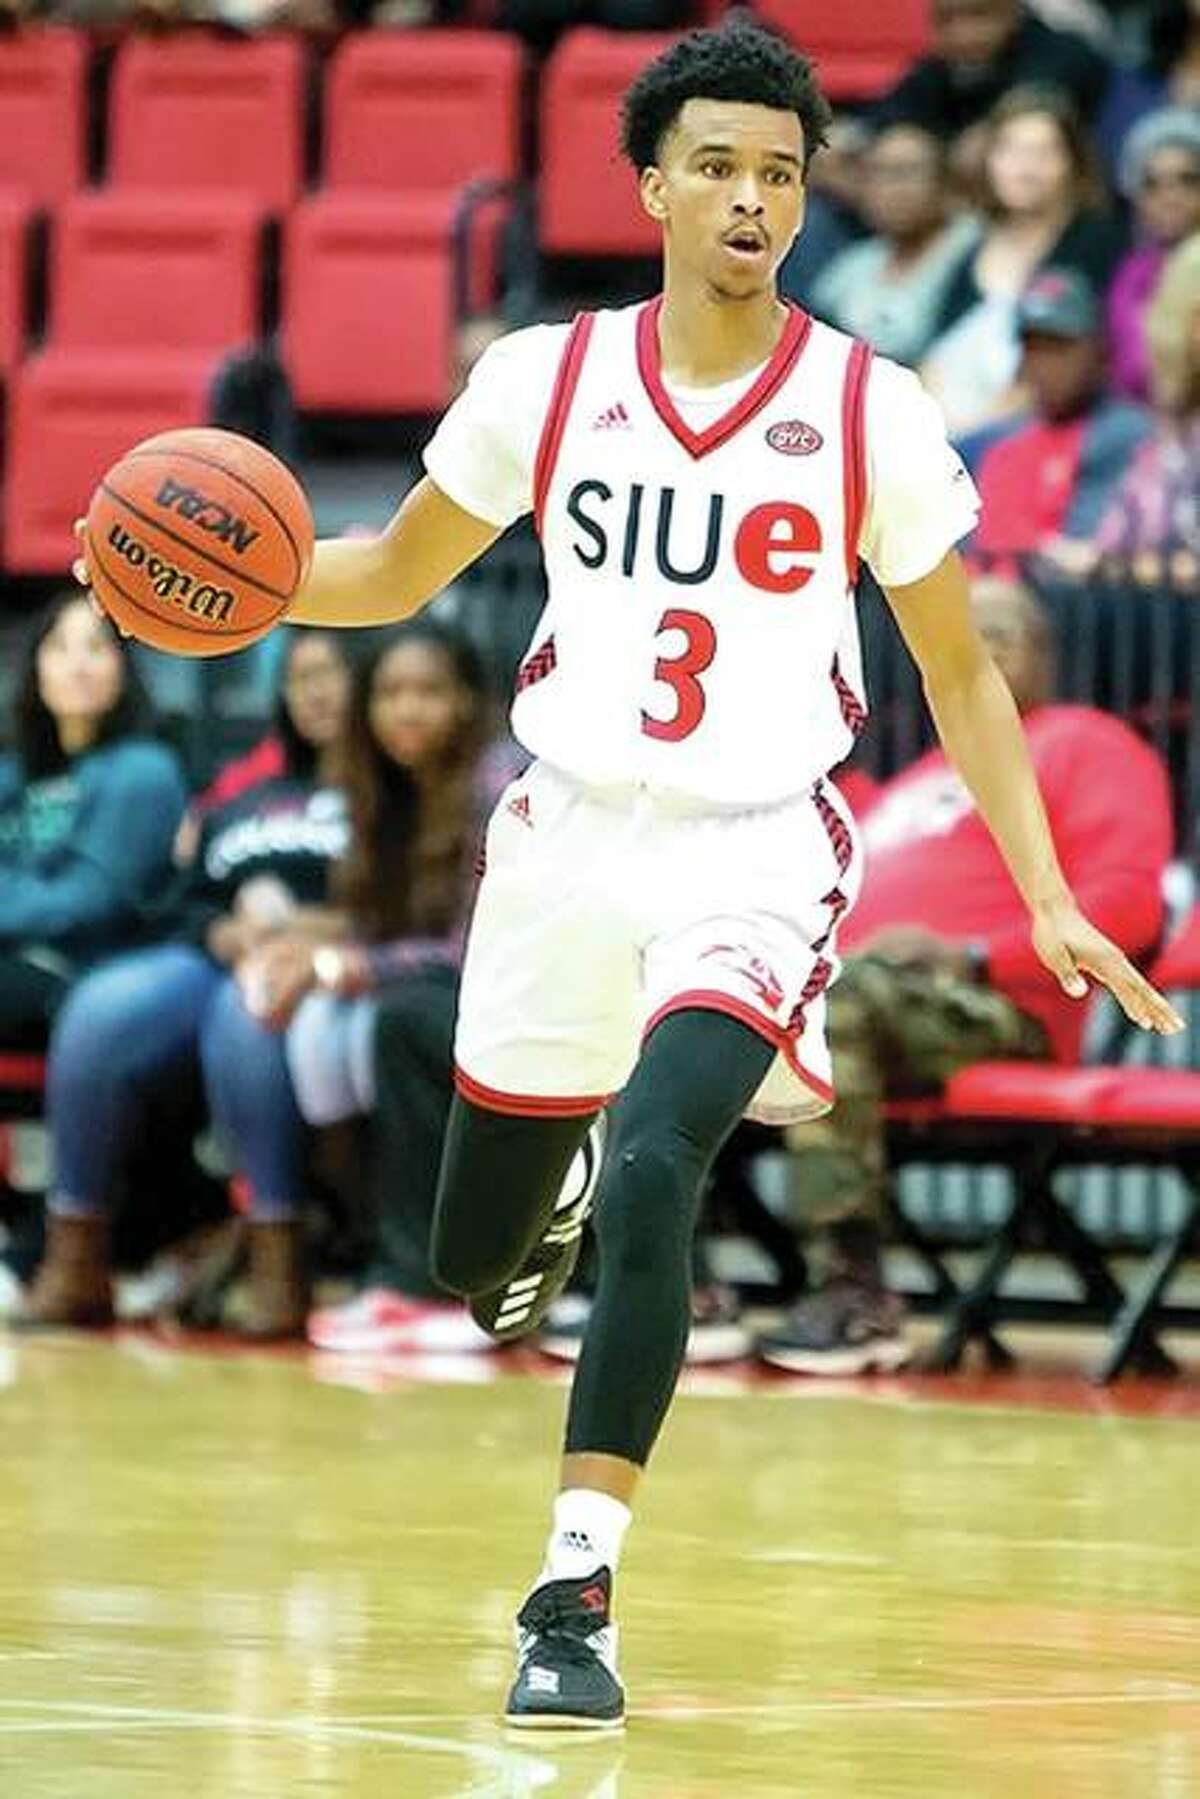 SIUE's Daniel Kinchen was named Ohio Valley Conference Newcomer of the Week Tuesday the after helping SIUE to back-to-back victories last week. It's his second Newcomer Award of the season.